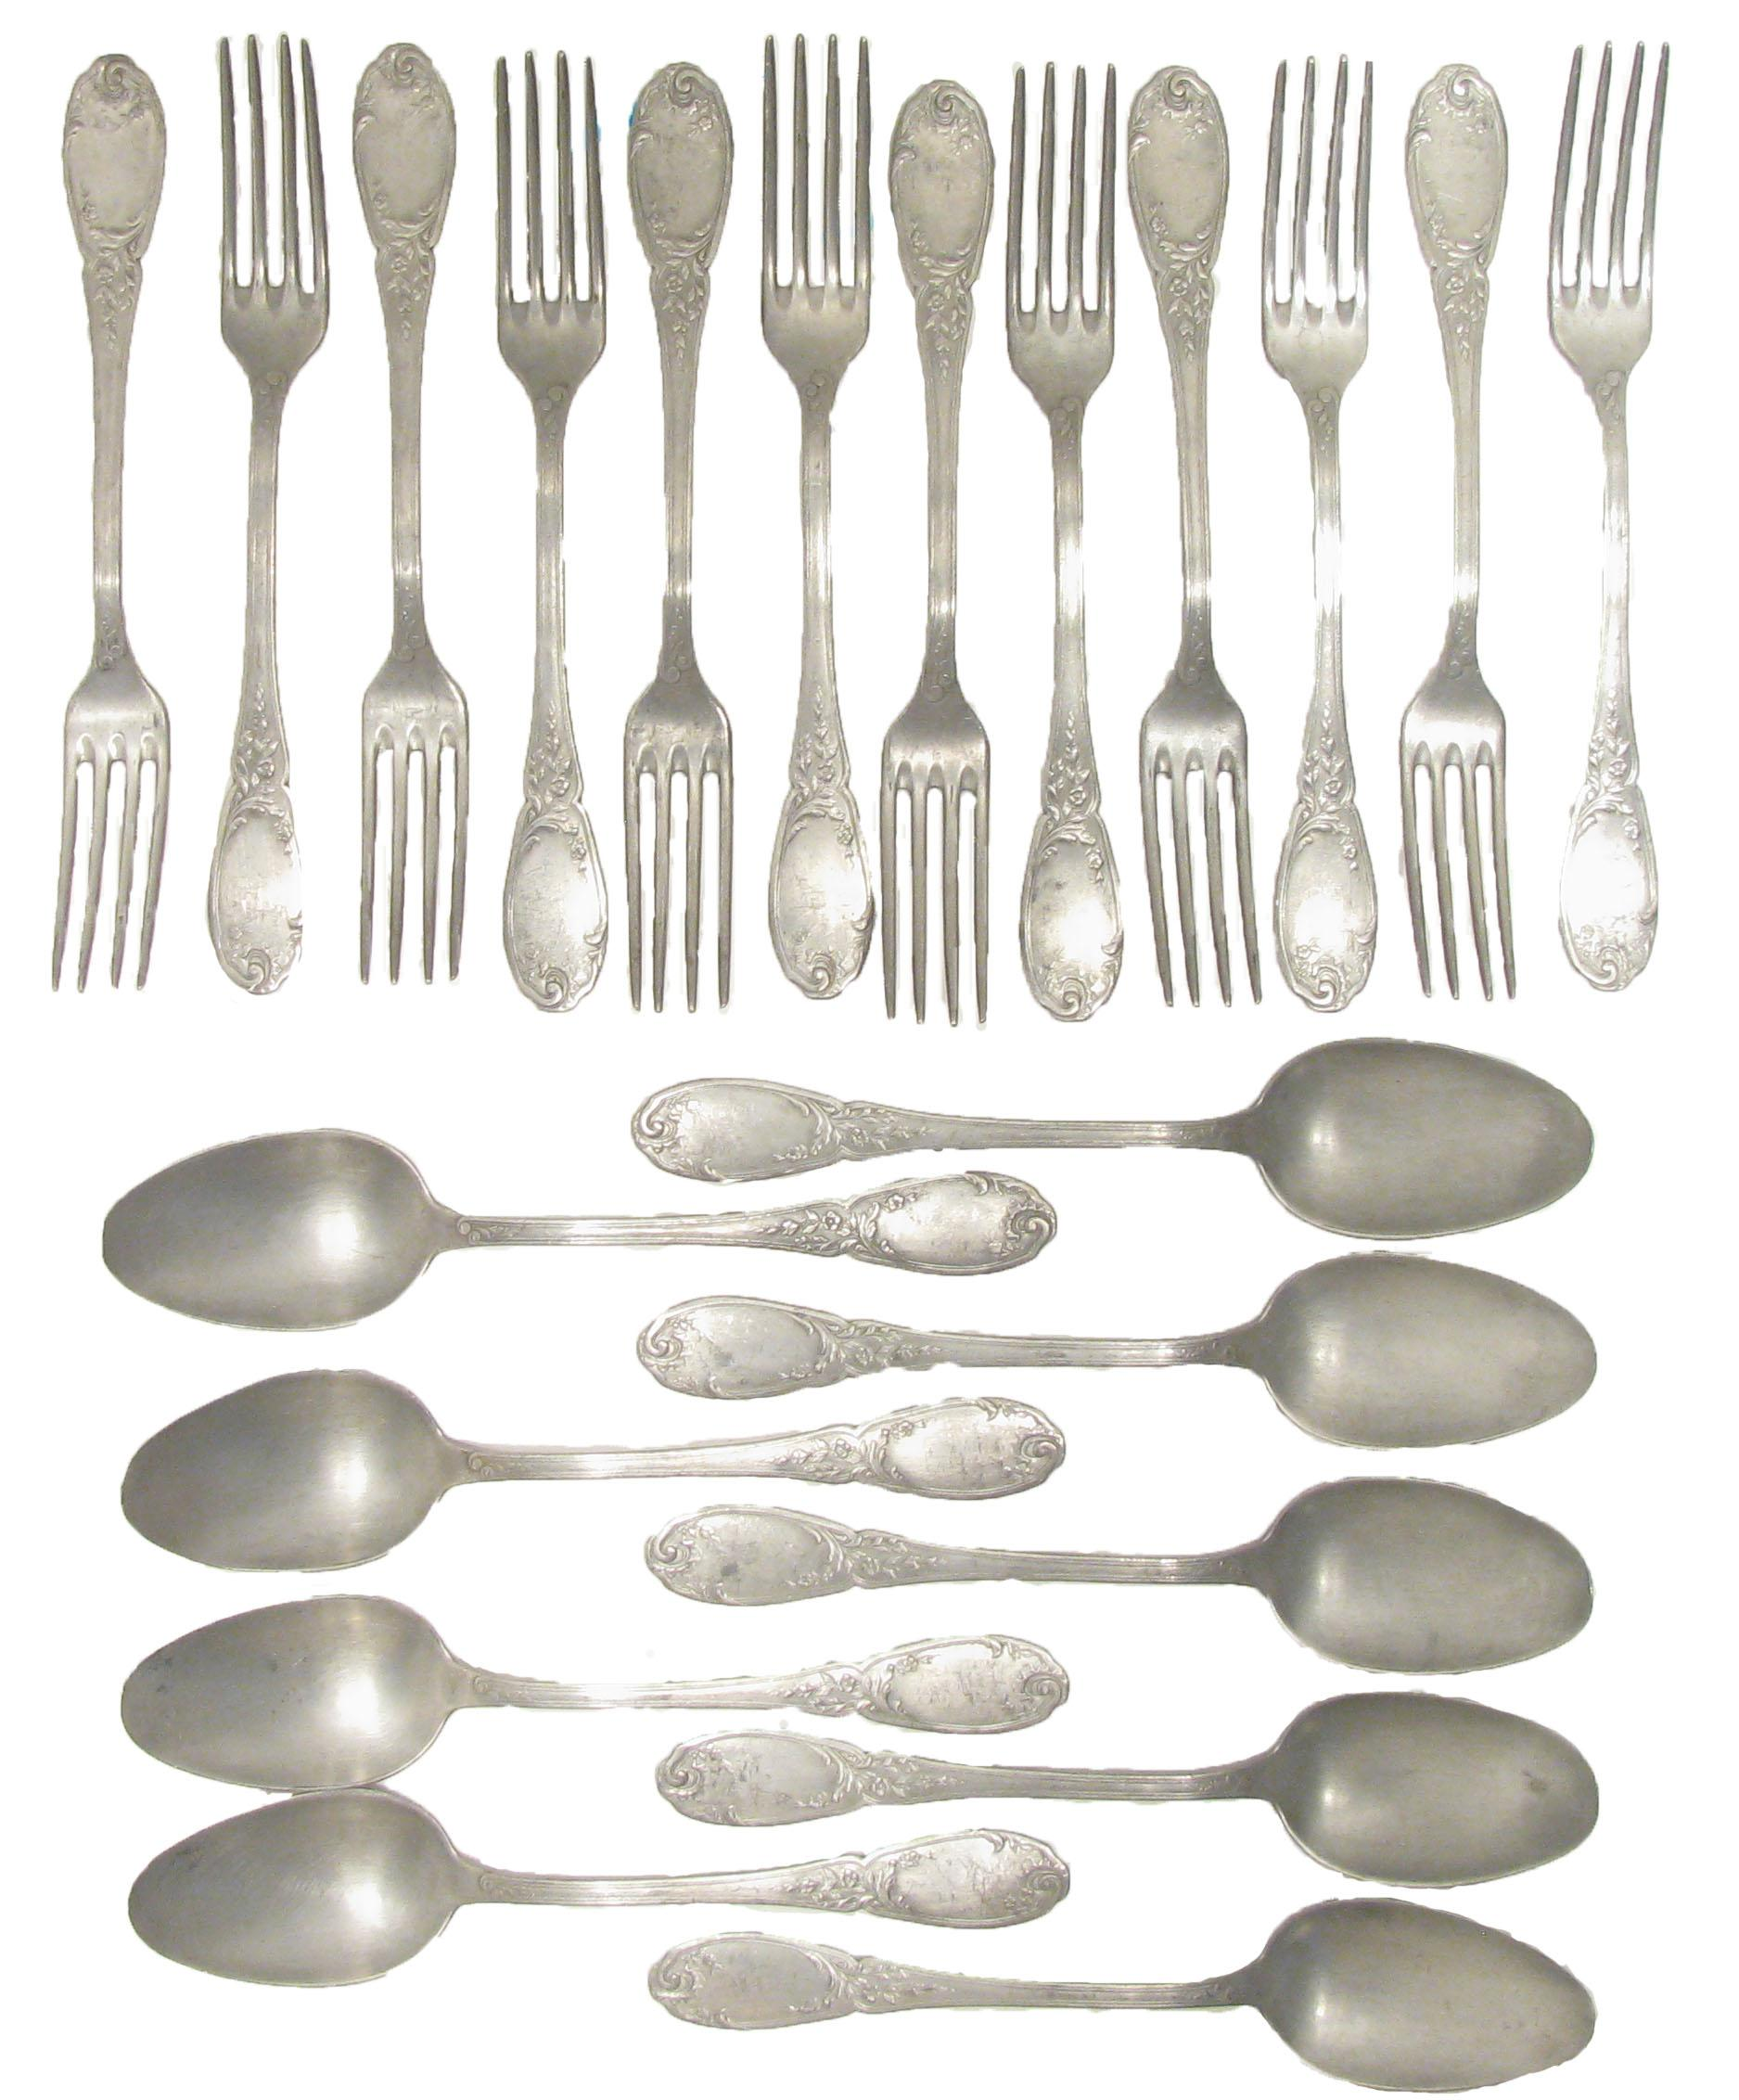 Merveilleux French Antique Oversized Pewter Flatware   21 Pcs. For Sale   Image 4 Of 4